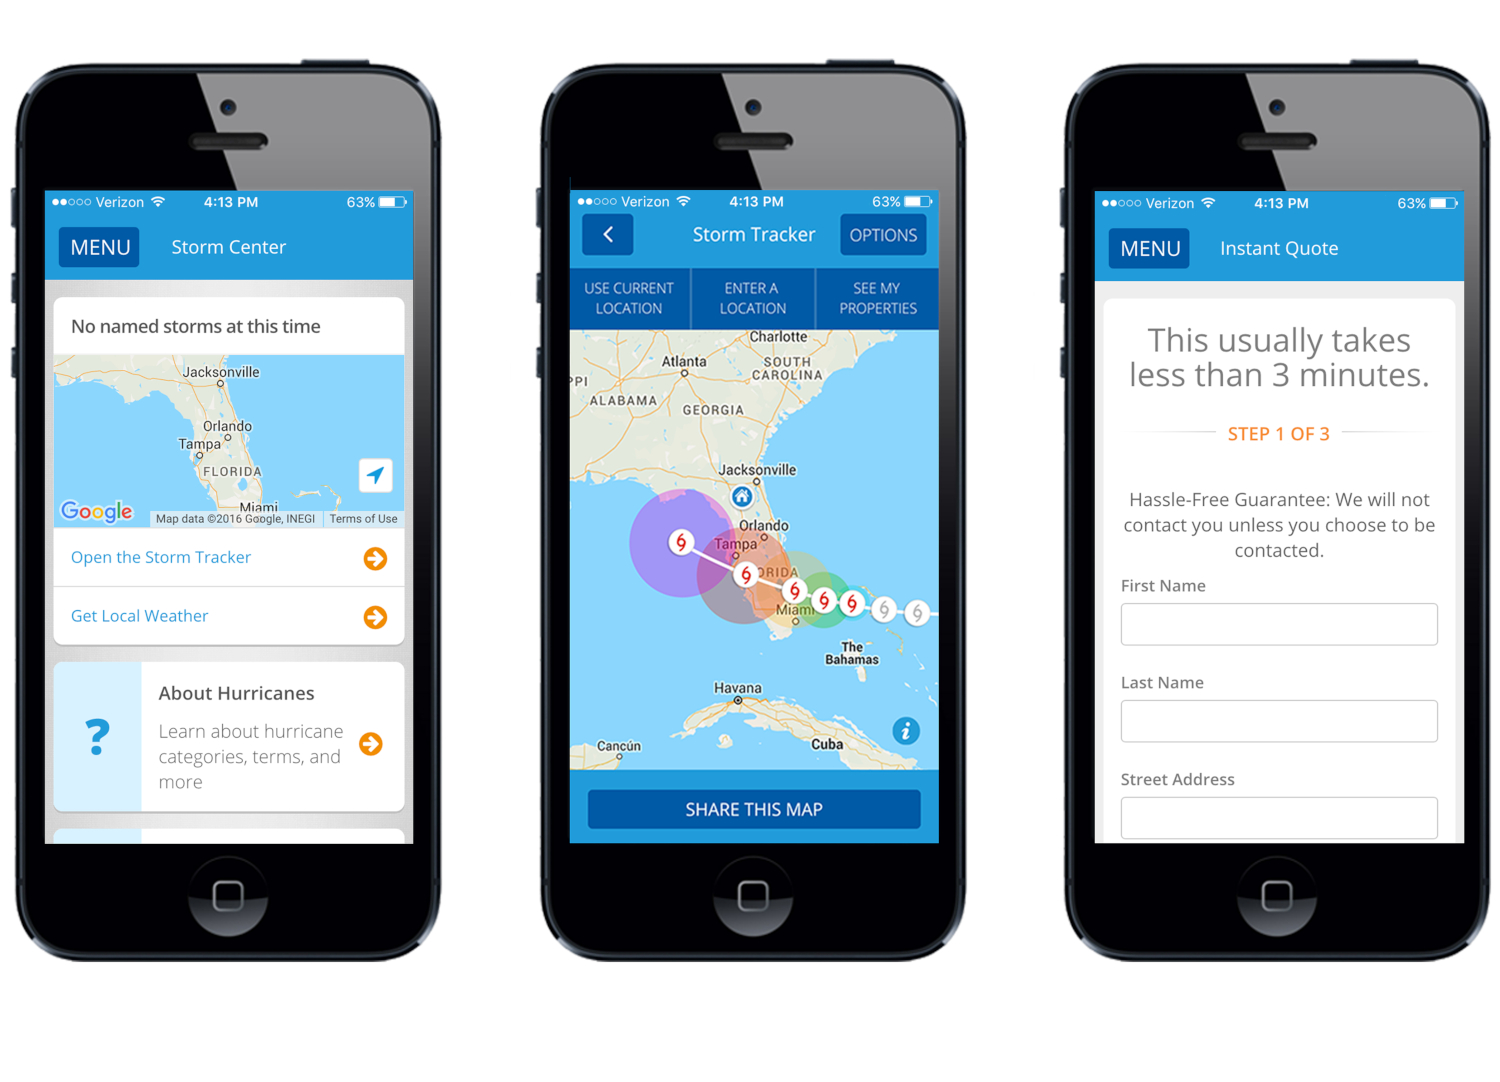 The Security First Mobile app has tools to help you prepare for storm season and track hurricanes on a custom map. (credits: PointSource / ibmphoto24 / Flickr Creative Commons Attribution-NonCommercial-NoDerivs 2.0 Generic (CC BY-NC-ND 2.0))